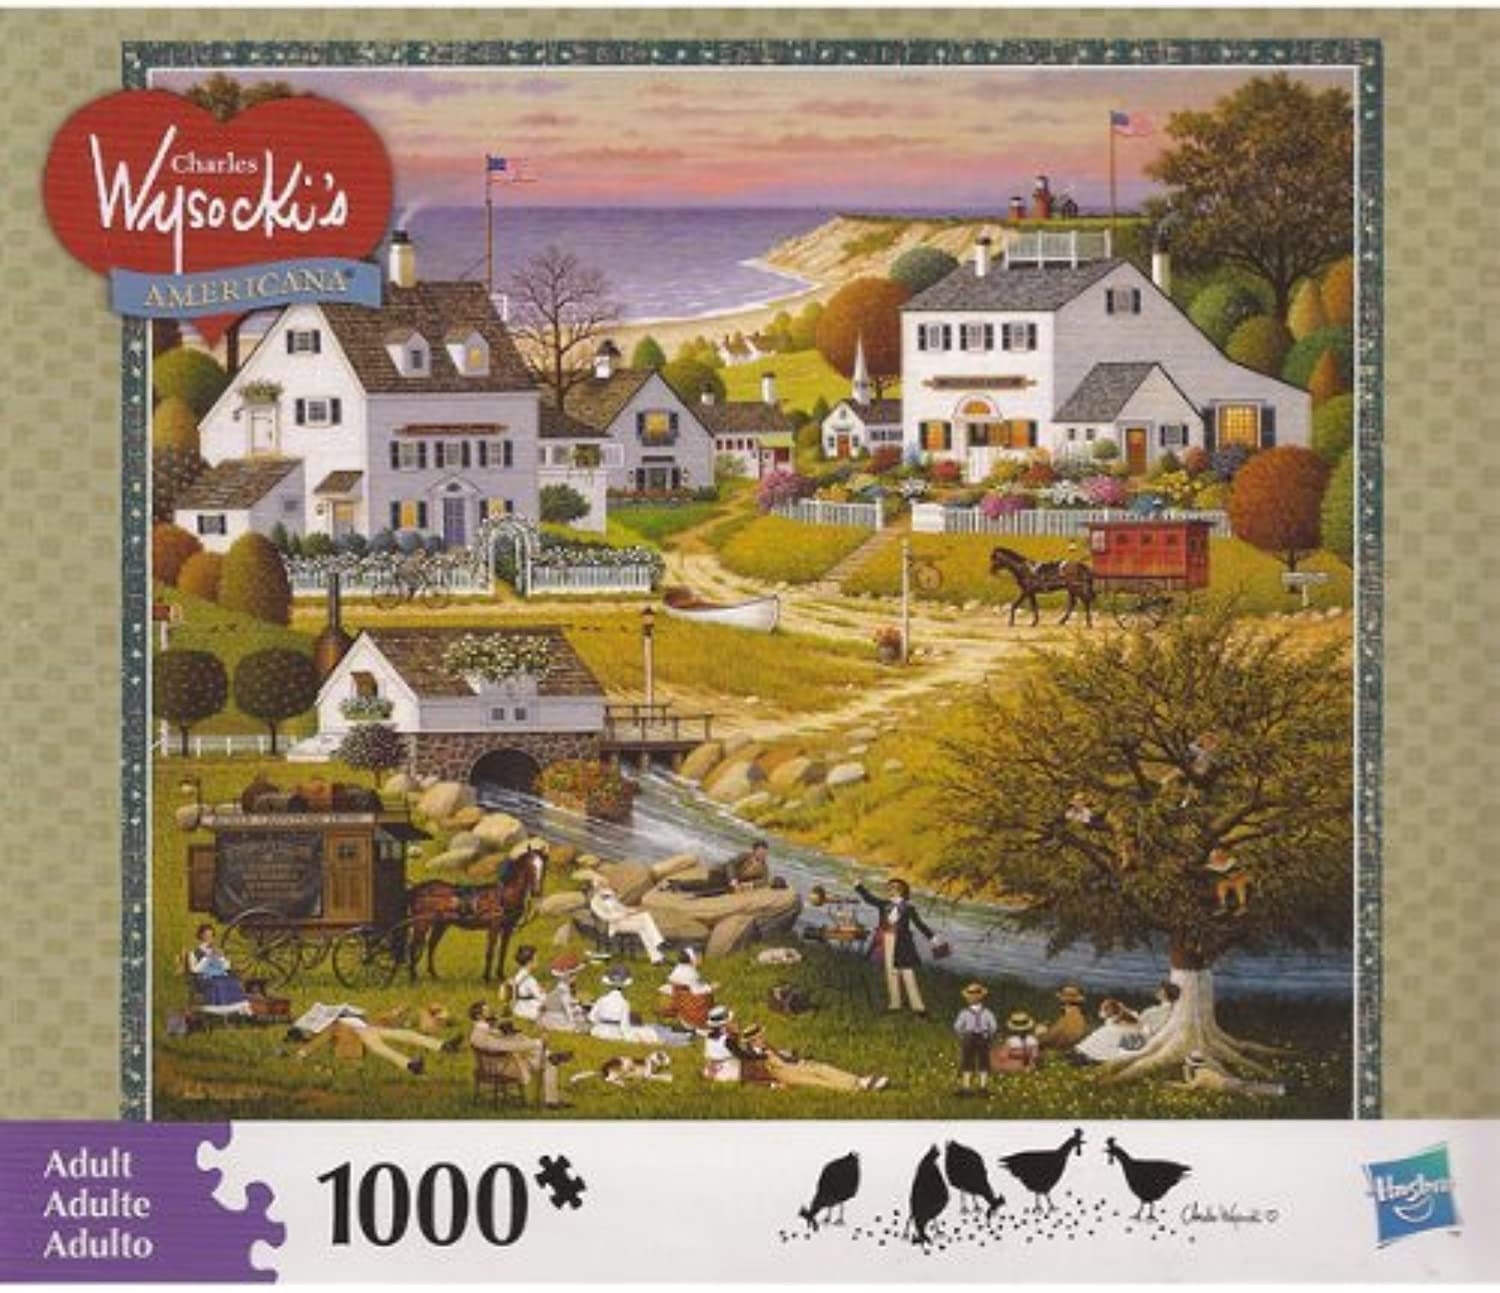 CHARLES WYSOCKI's AMERICANA PUZZLE Riverside Family Reunion 1000 Piece by MB PUZZLE